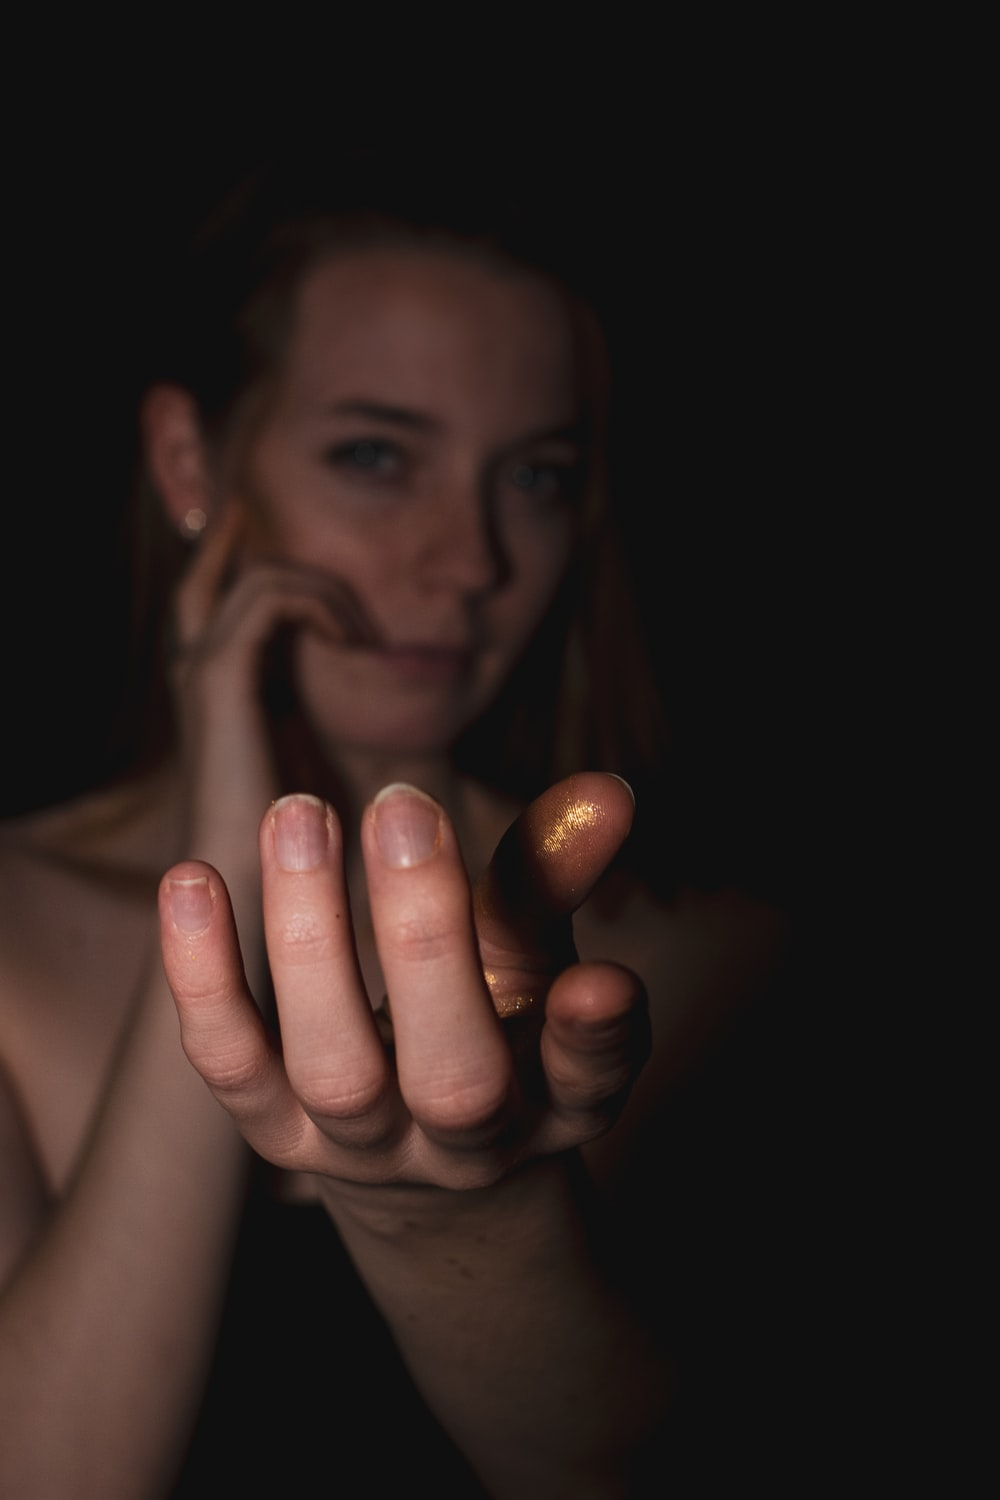 shallow focus photo of woman showing left hand